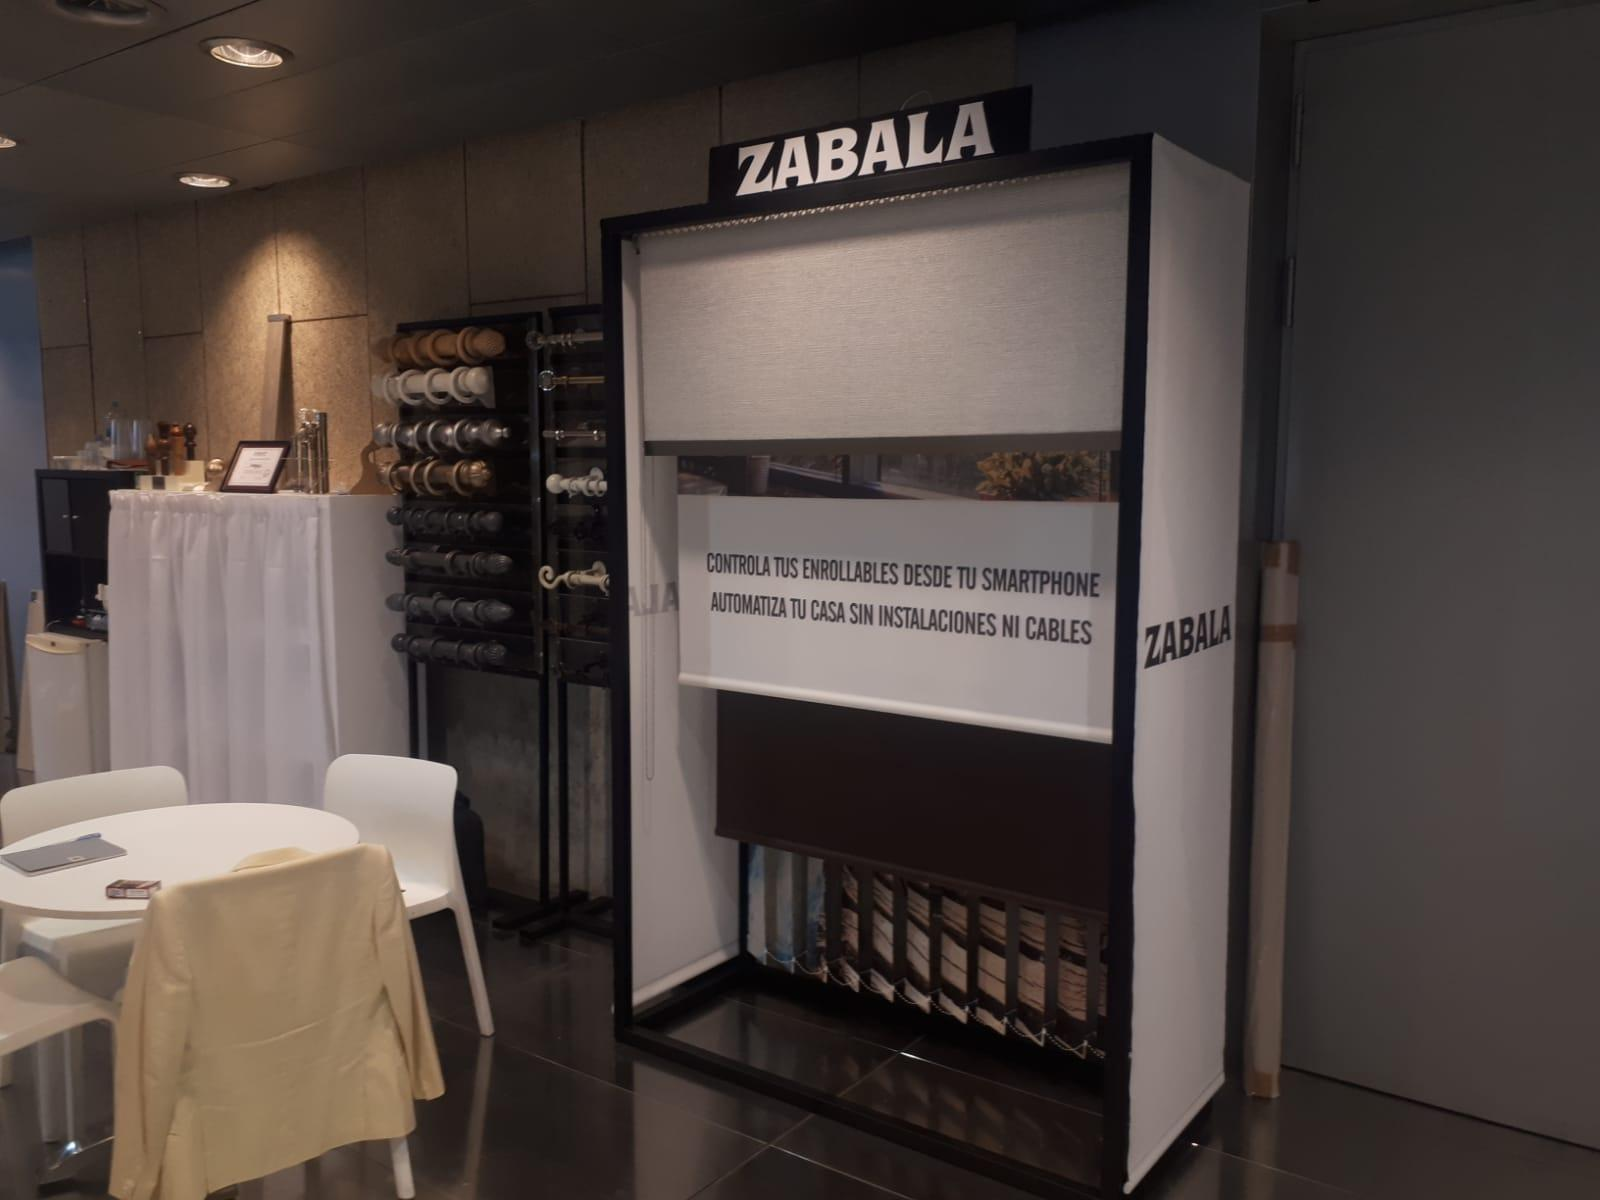 Home Textiles 2019 - Zabala Group 1958